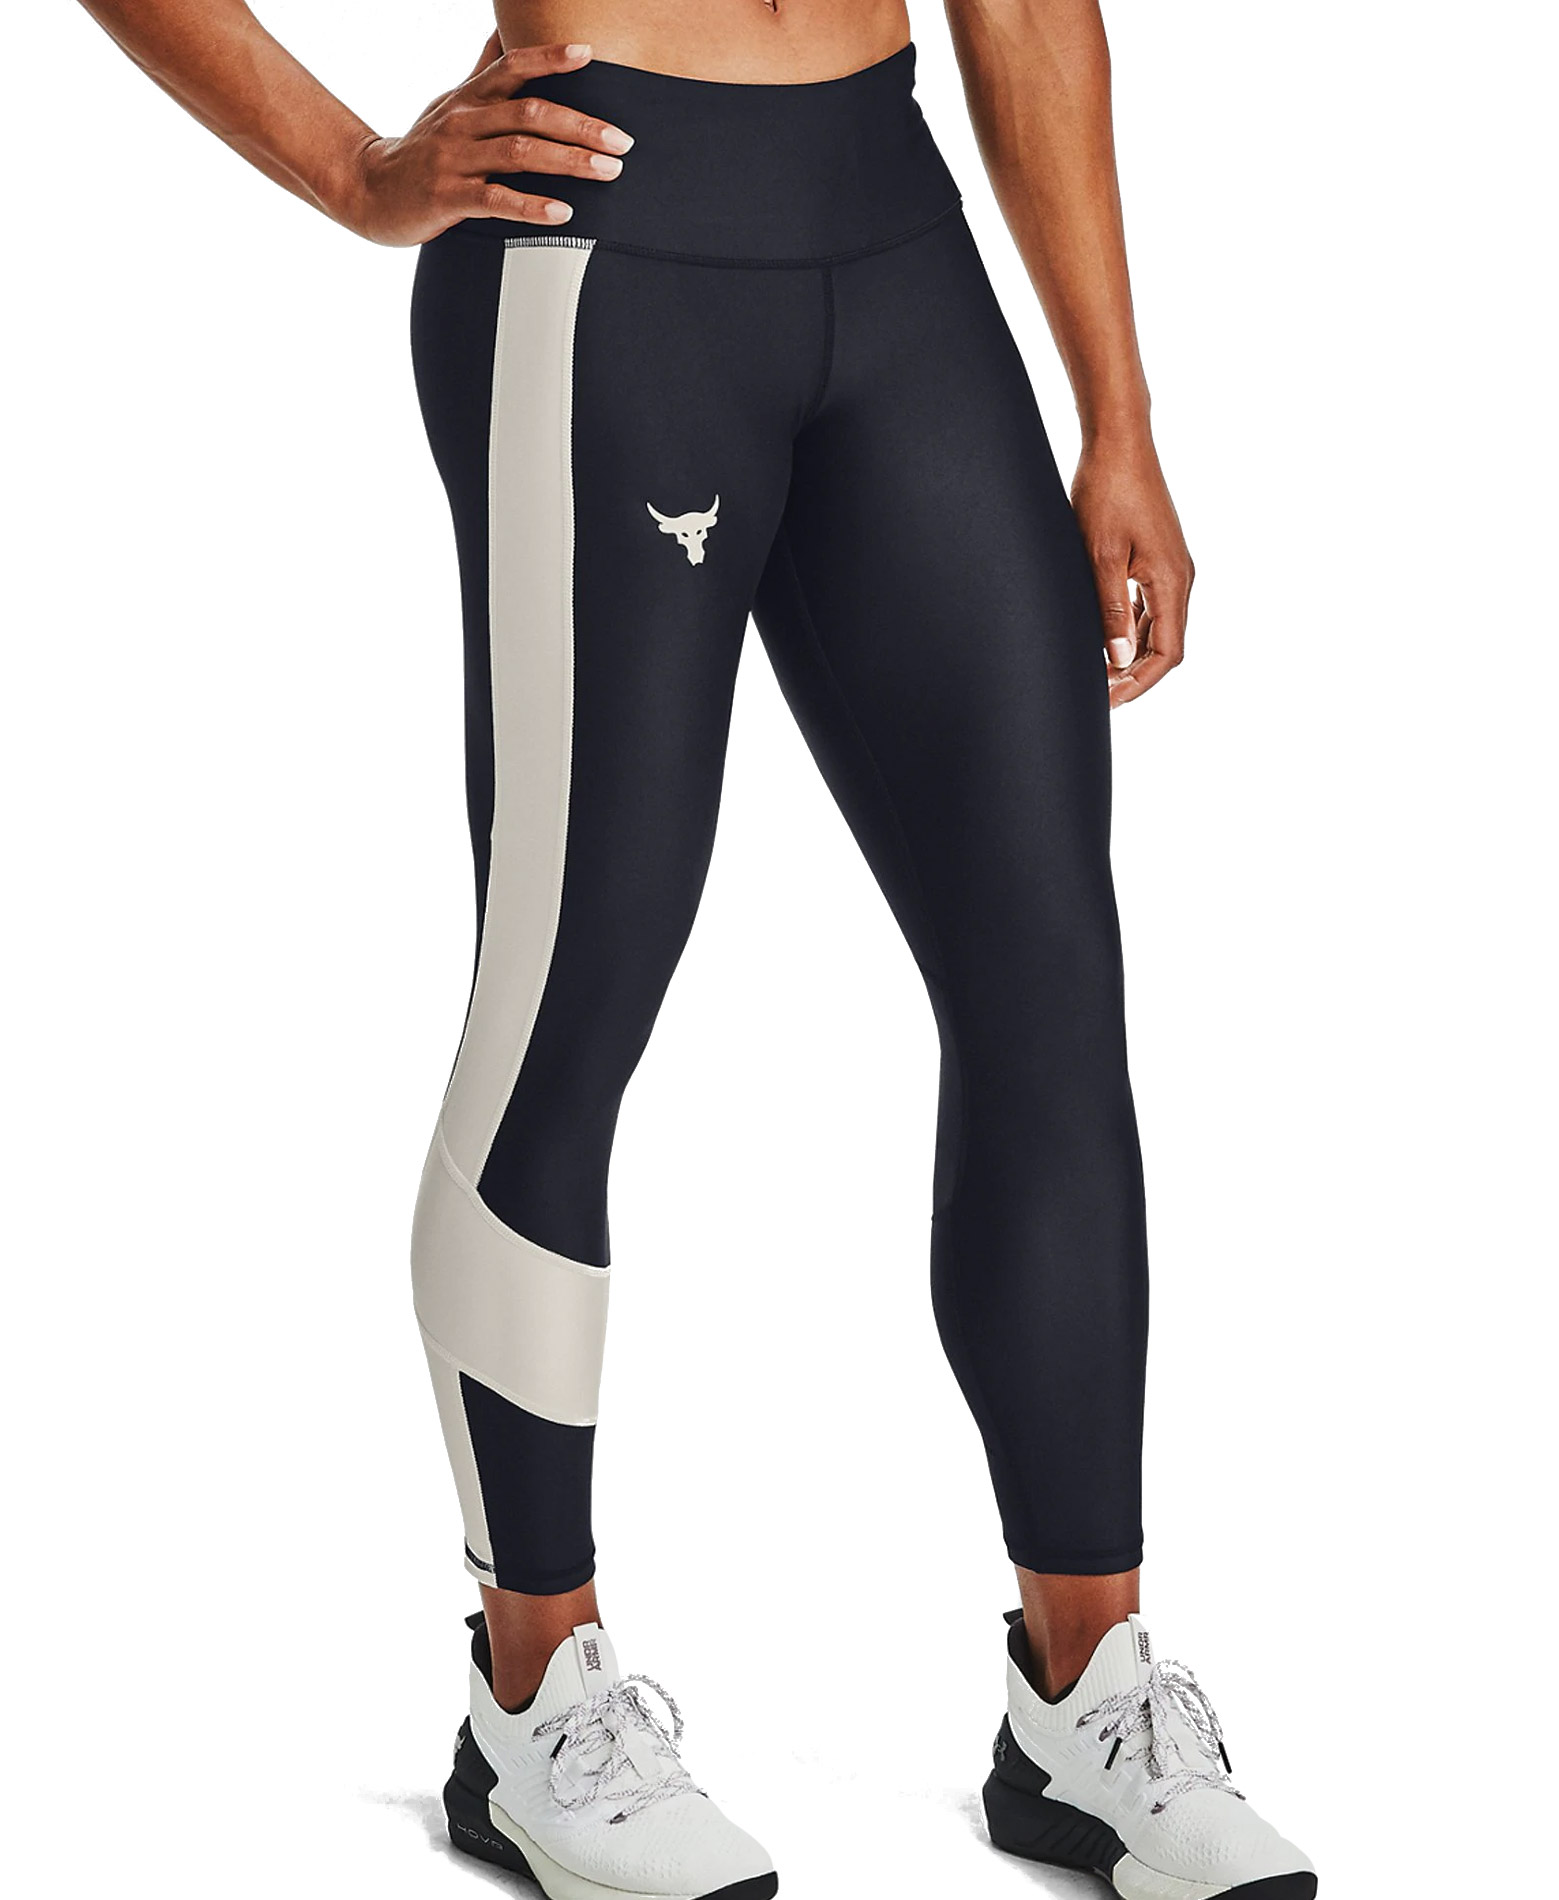 UNDER ARMOUR PROJECT ROCK ANKLE CROP KAPRI 1359259-001 Μαύρο